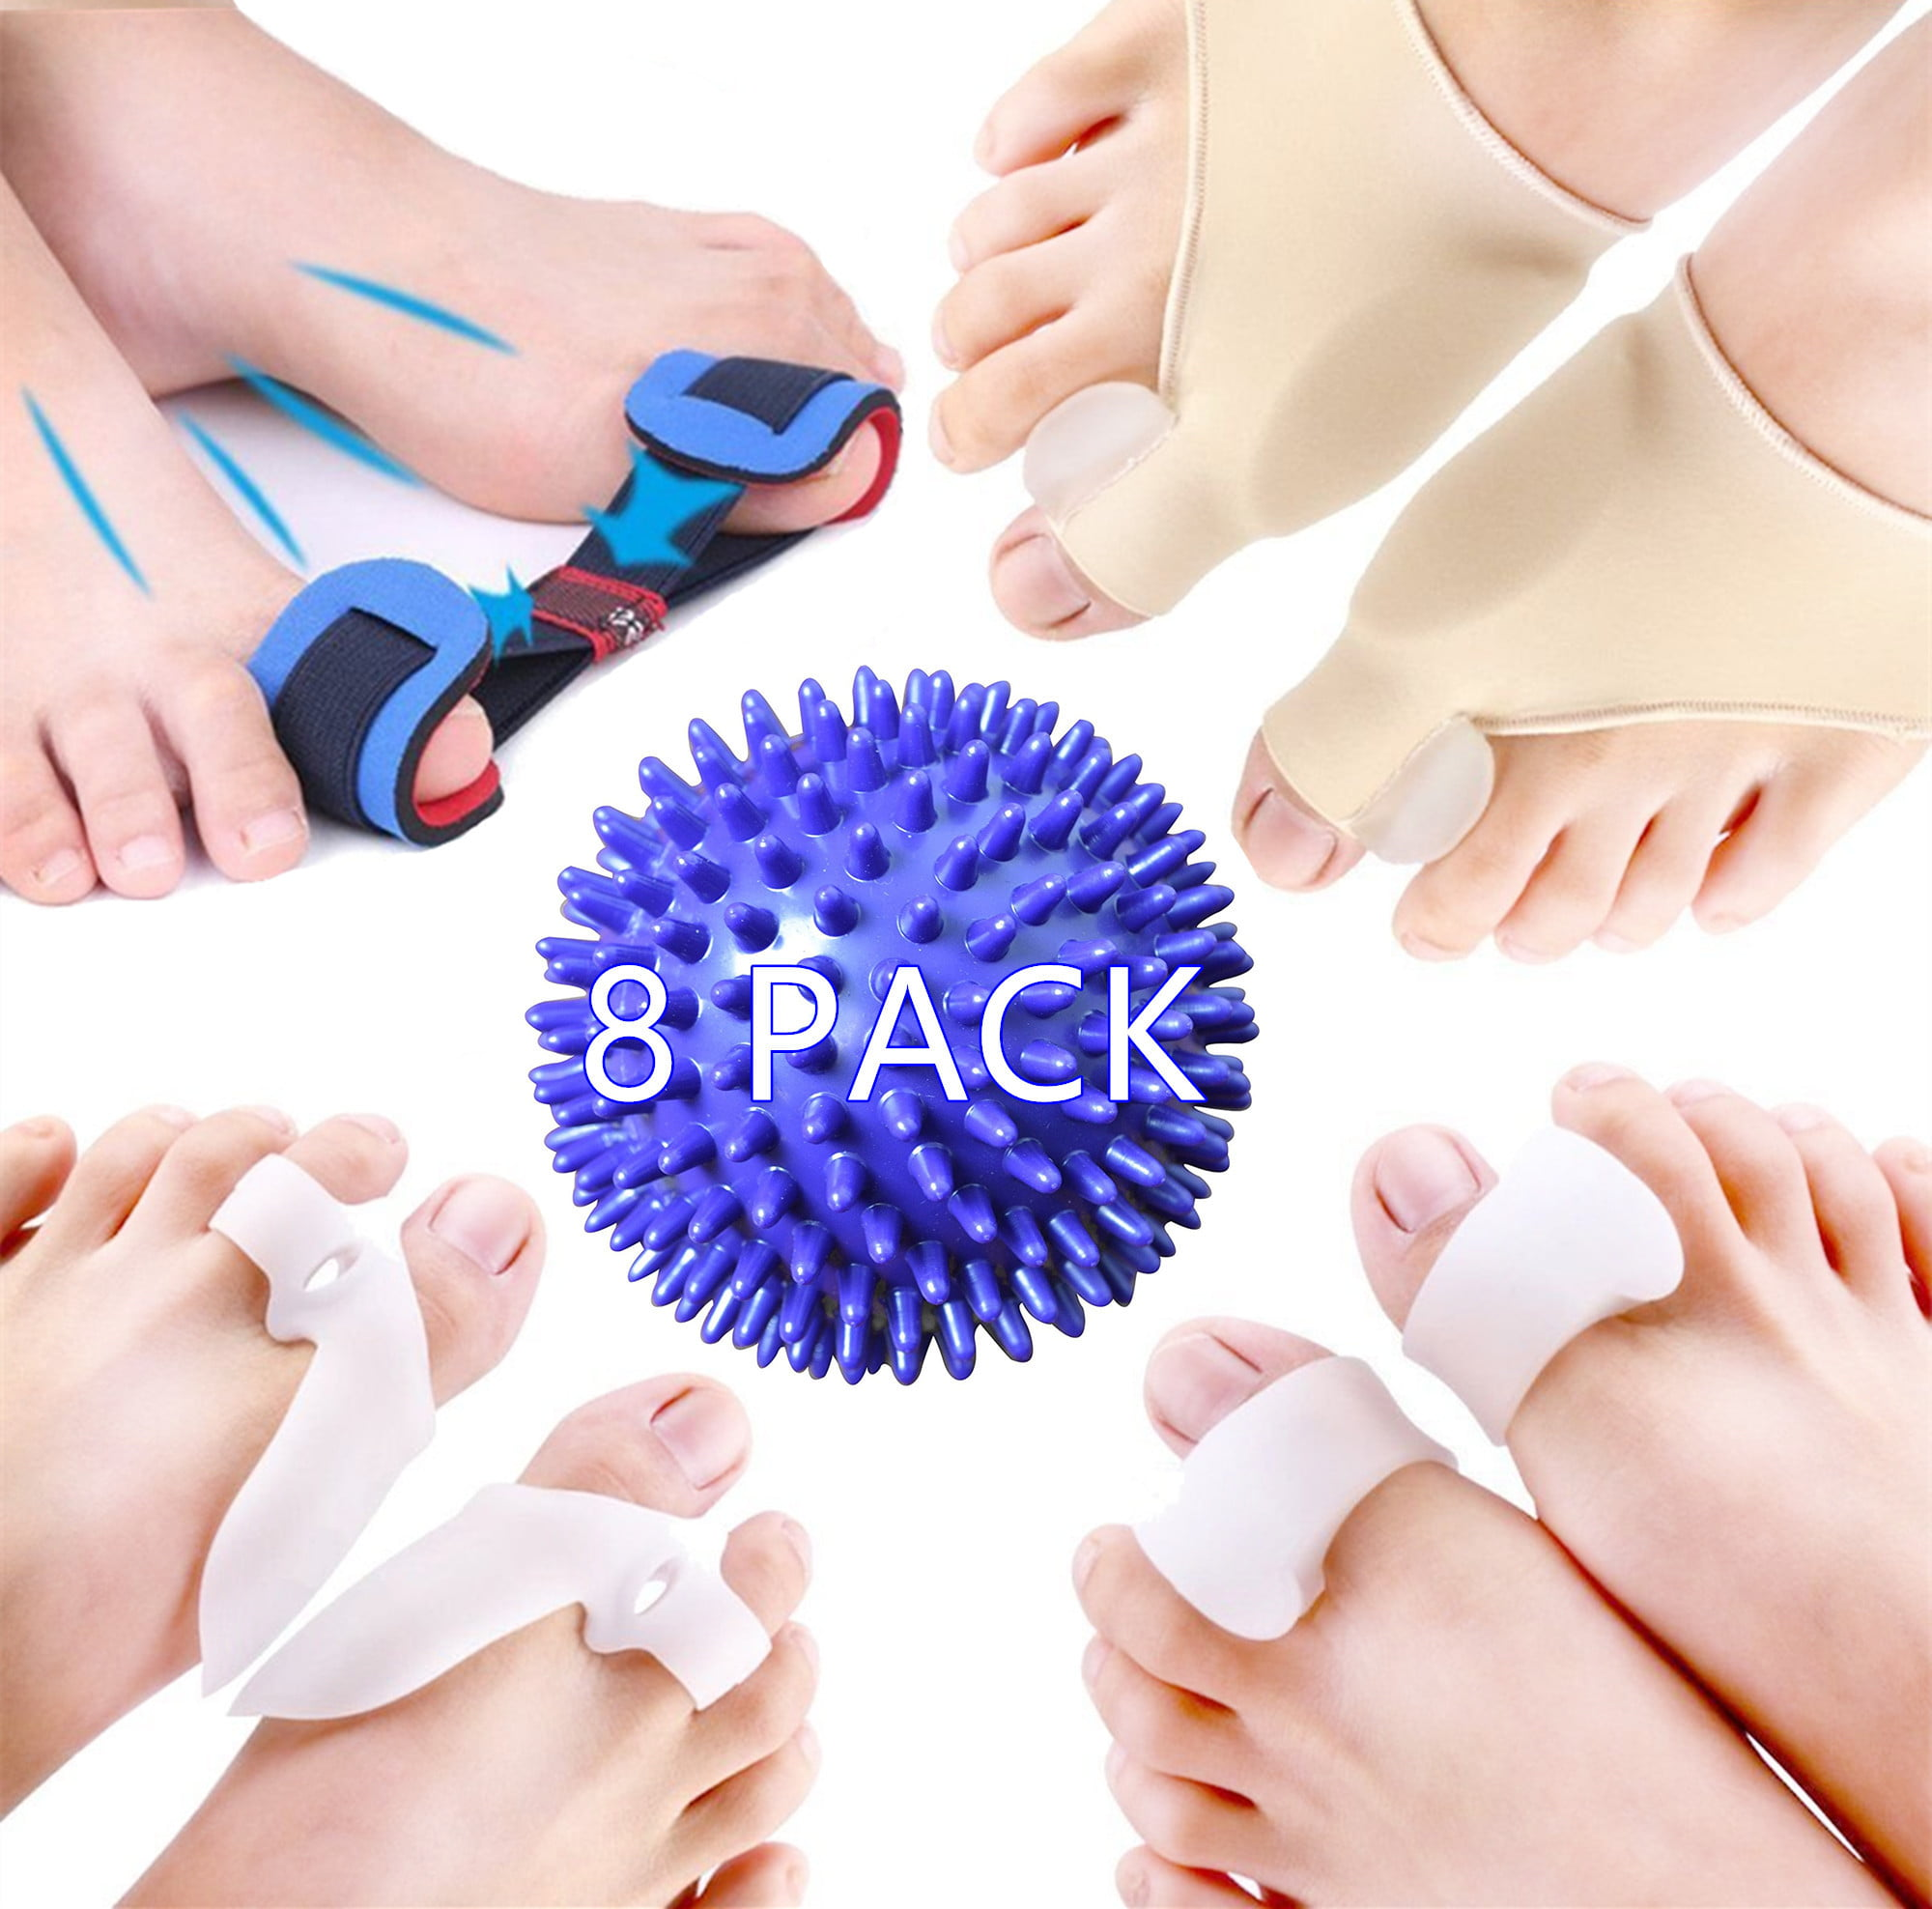 ff8a13b3f6 Bunion Corrector, Bunion Relief Protector Kit Spreader Bunion Relief Socks  Sleeves Toe Stretcher & Separator, Foot Massage Ball for Tailors Bunion, ...